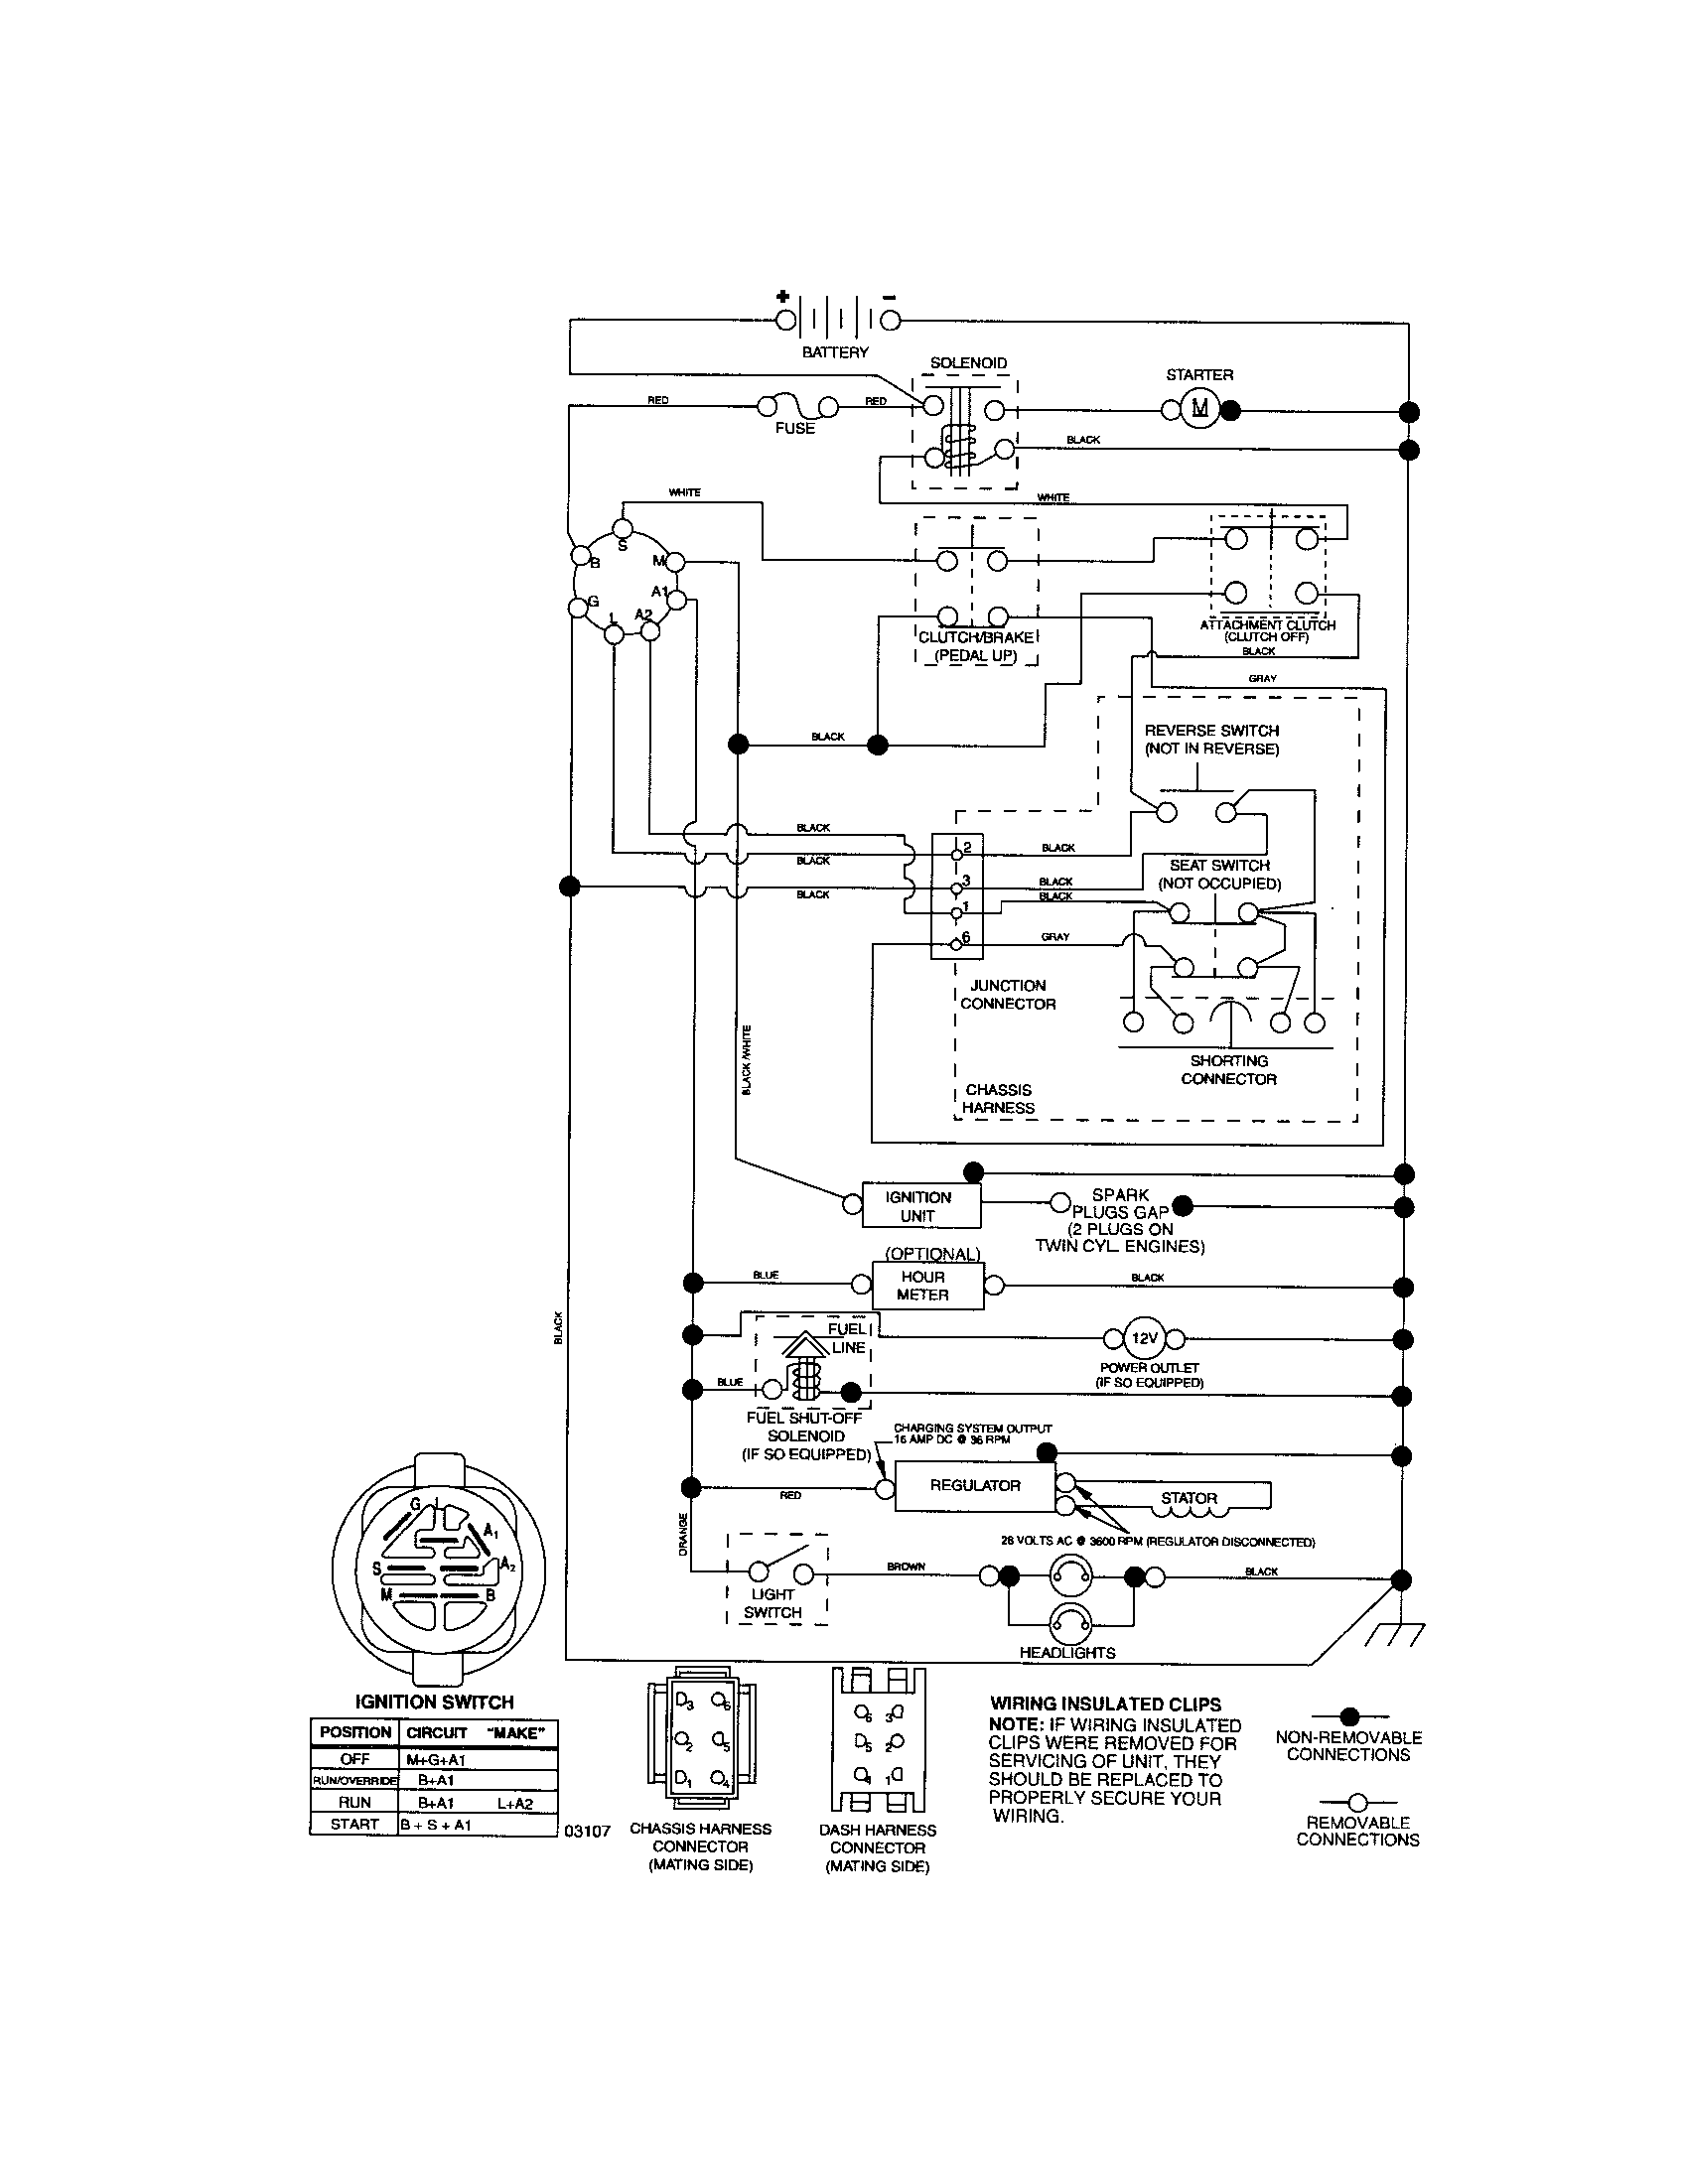 white lawn mower wiring diagram white lawn mower wiring diagram craftsman riding mower electrical diagram wiring diagram